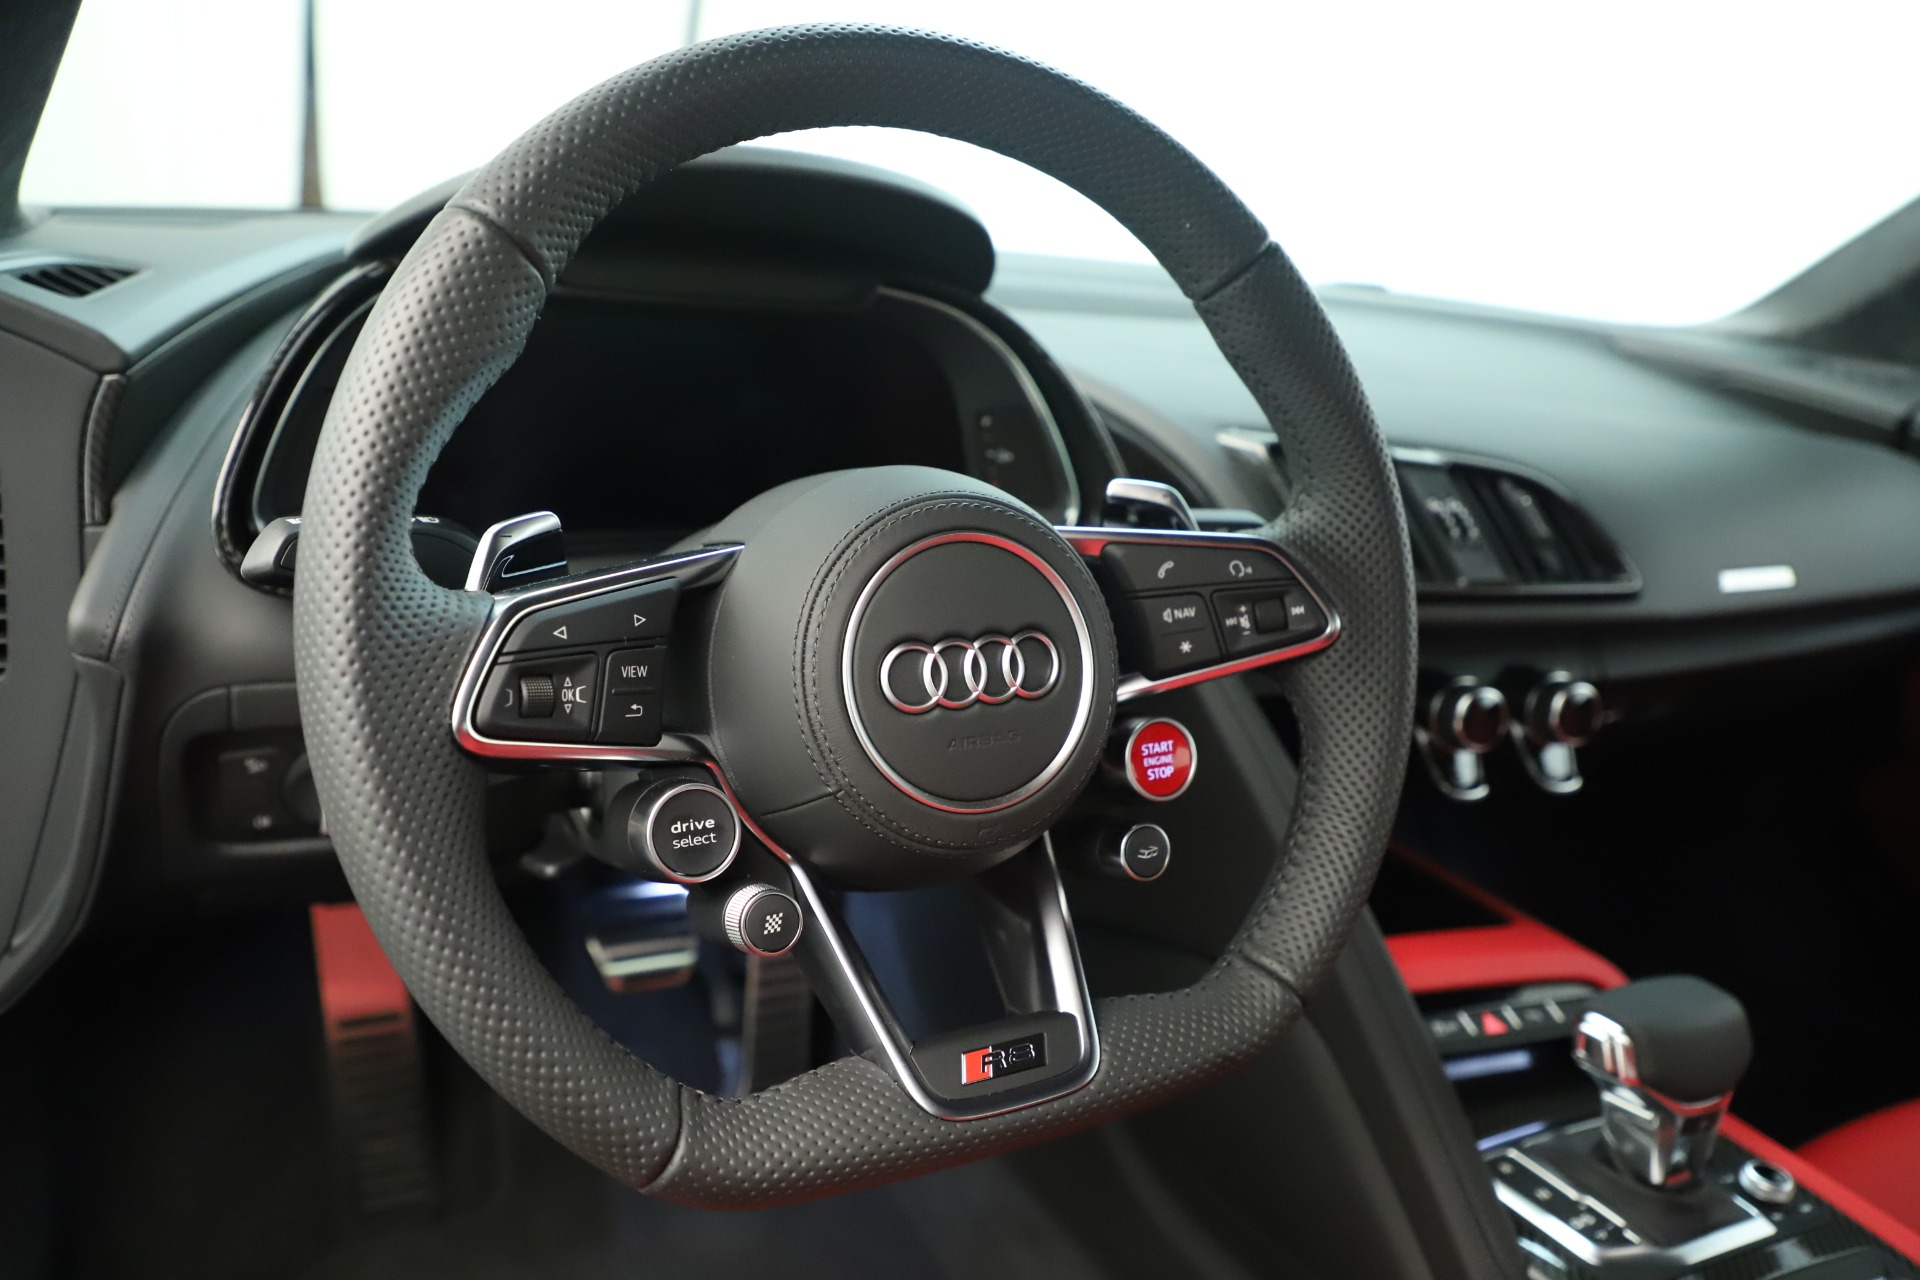 Used 2018 Audi R8 5.2 quattro V10 Plus For Sale In Westport, CT 3360_p21